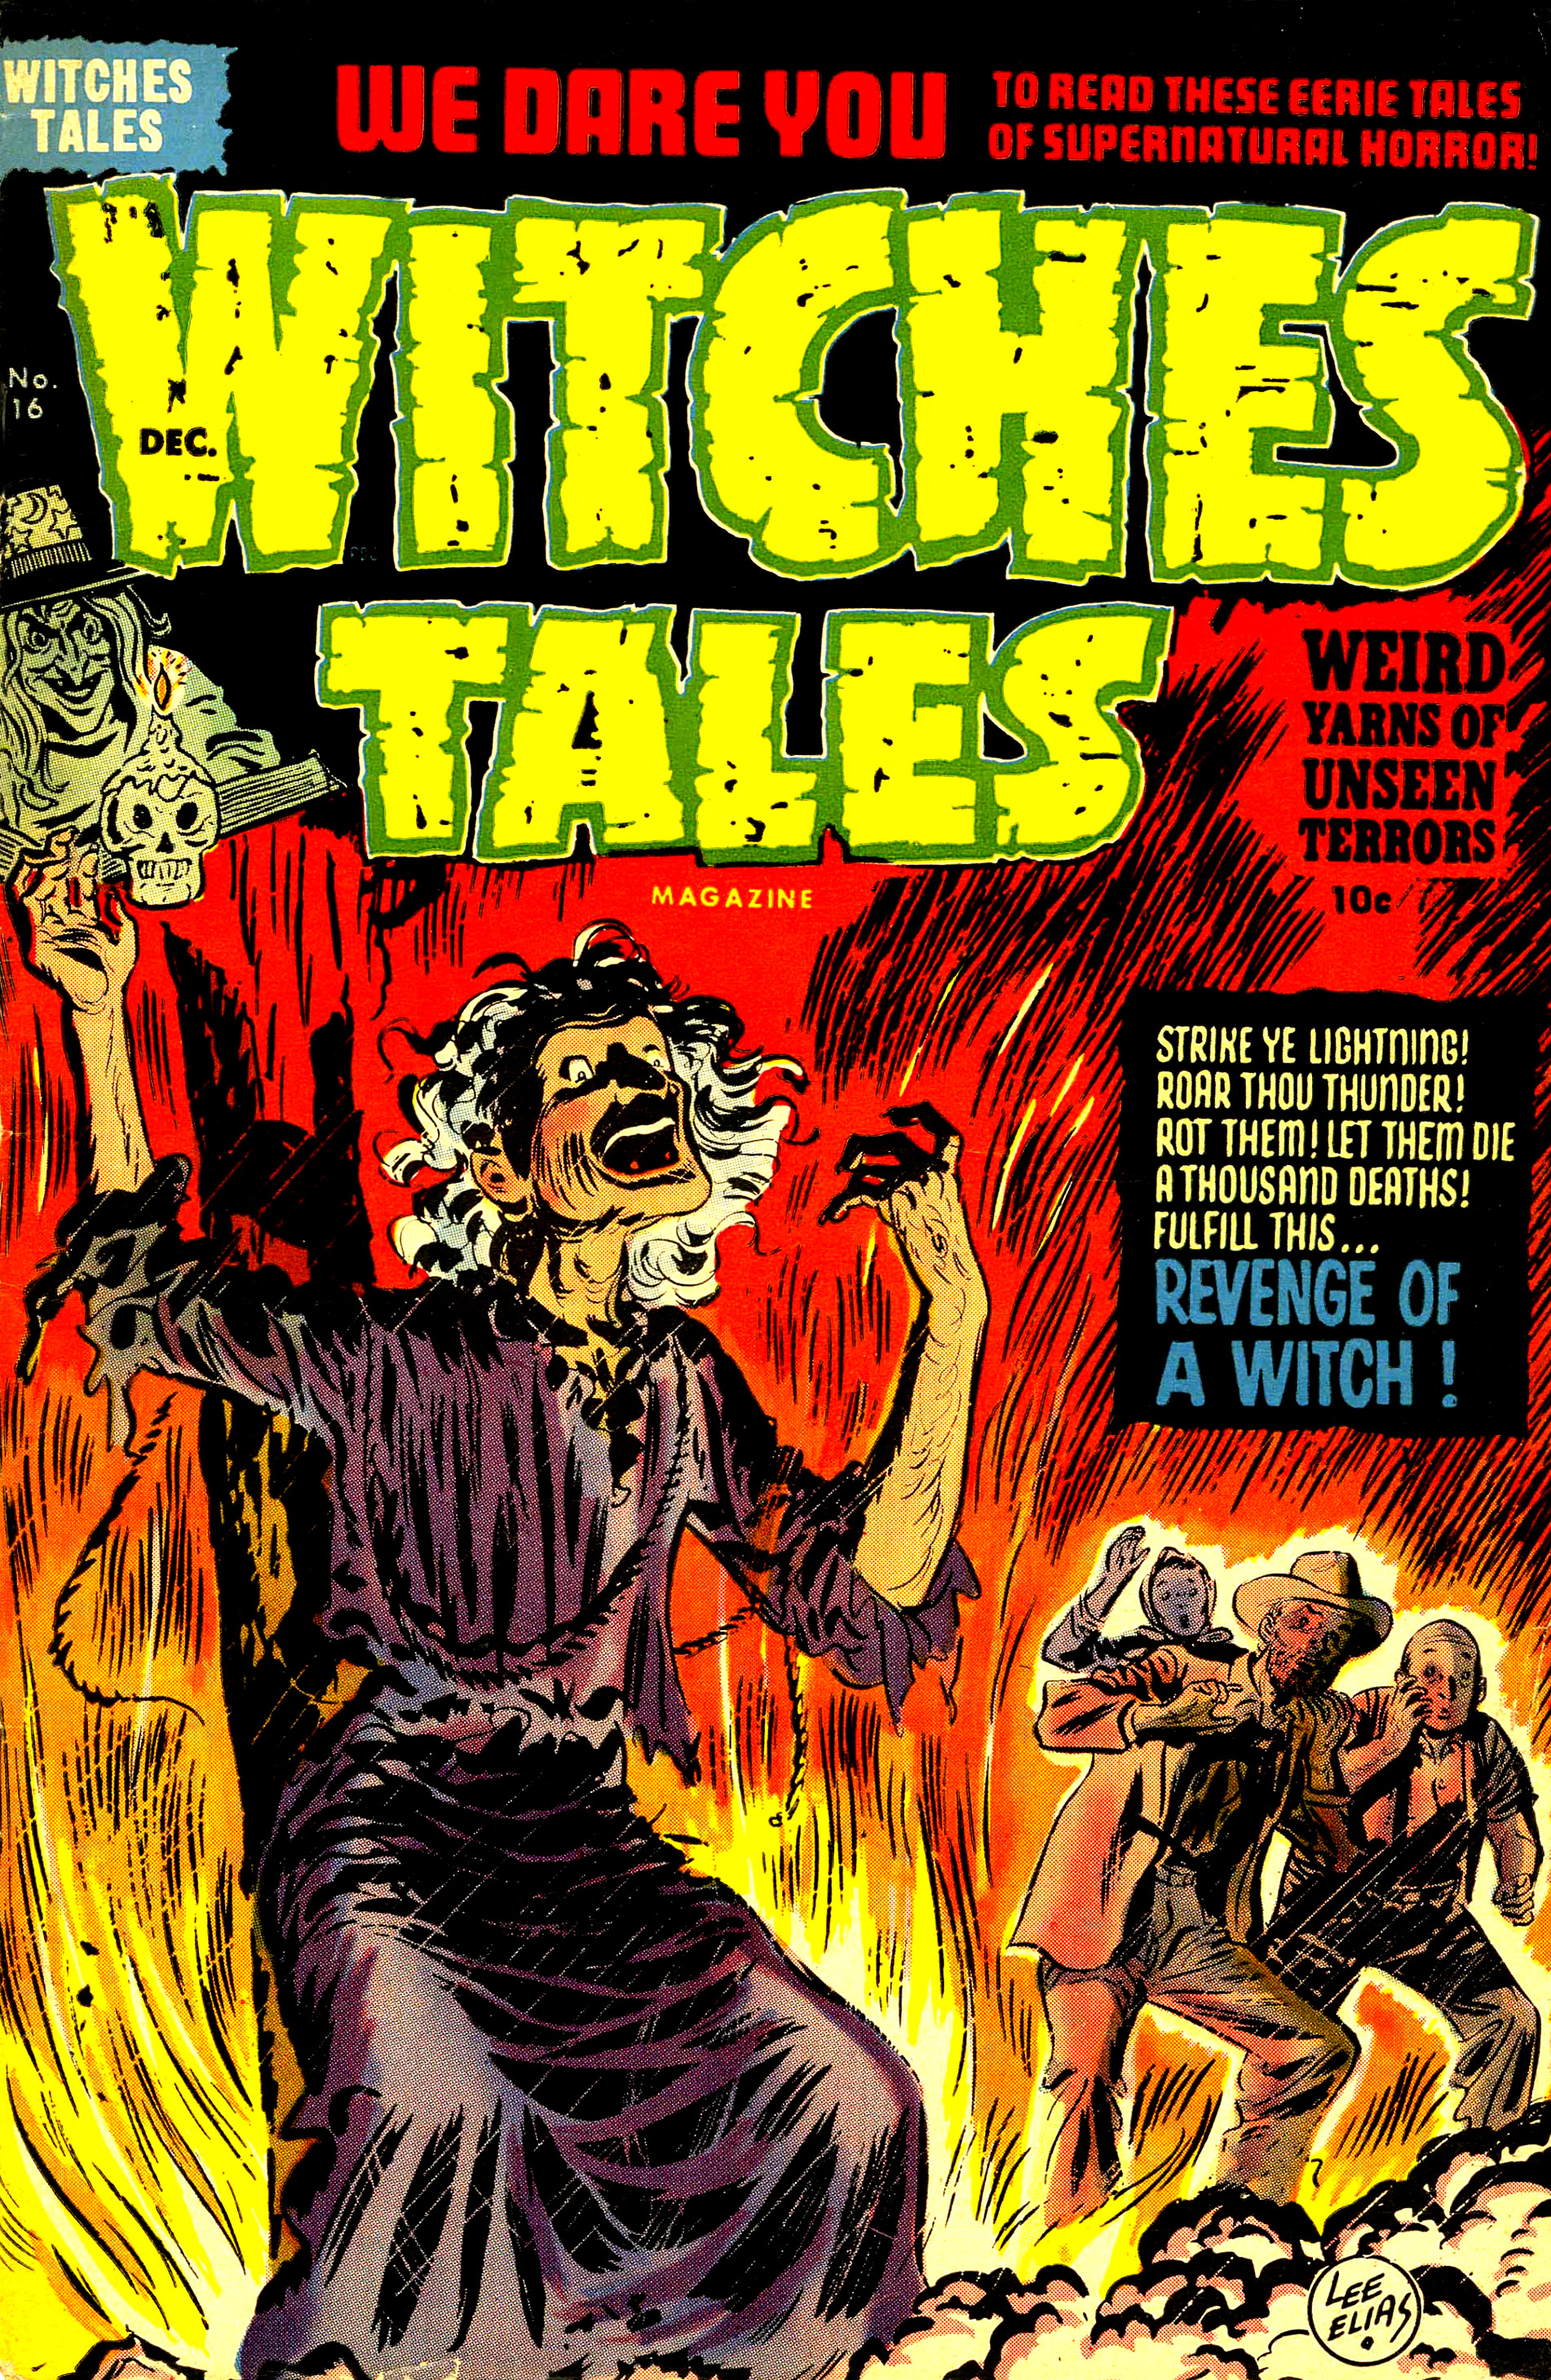 Witches Tales #16, Lee Elias Cover (Harvey, 1952)